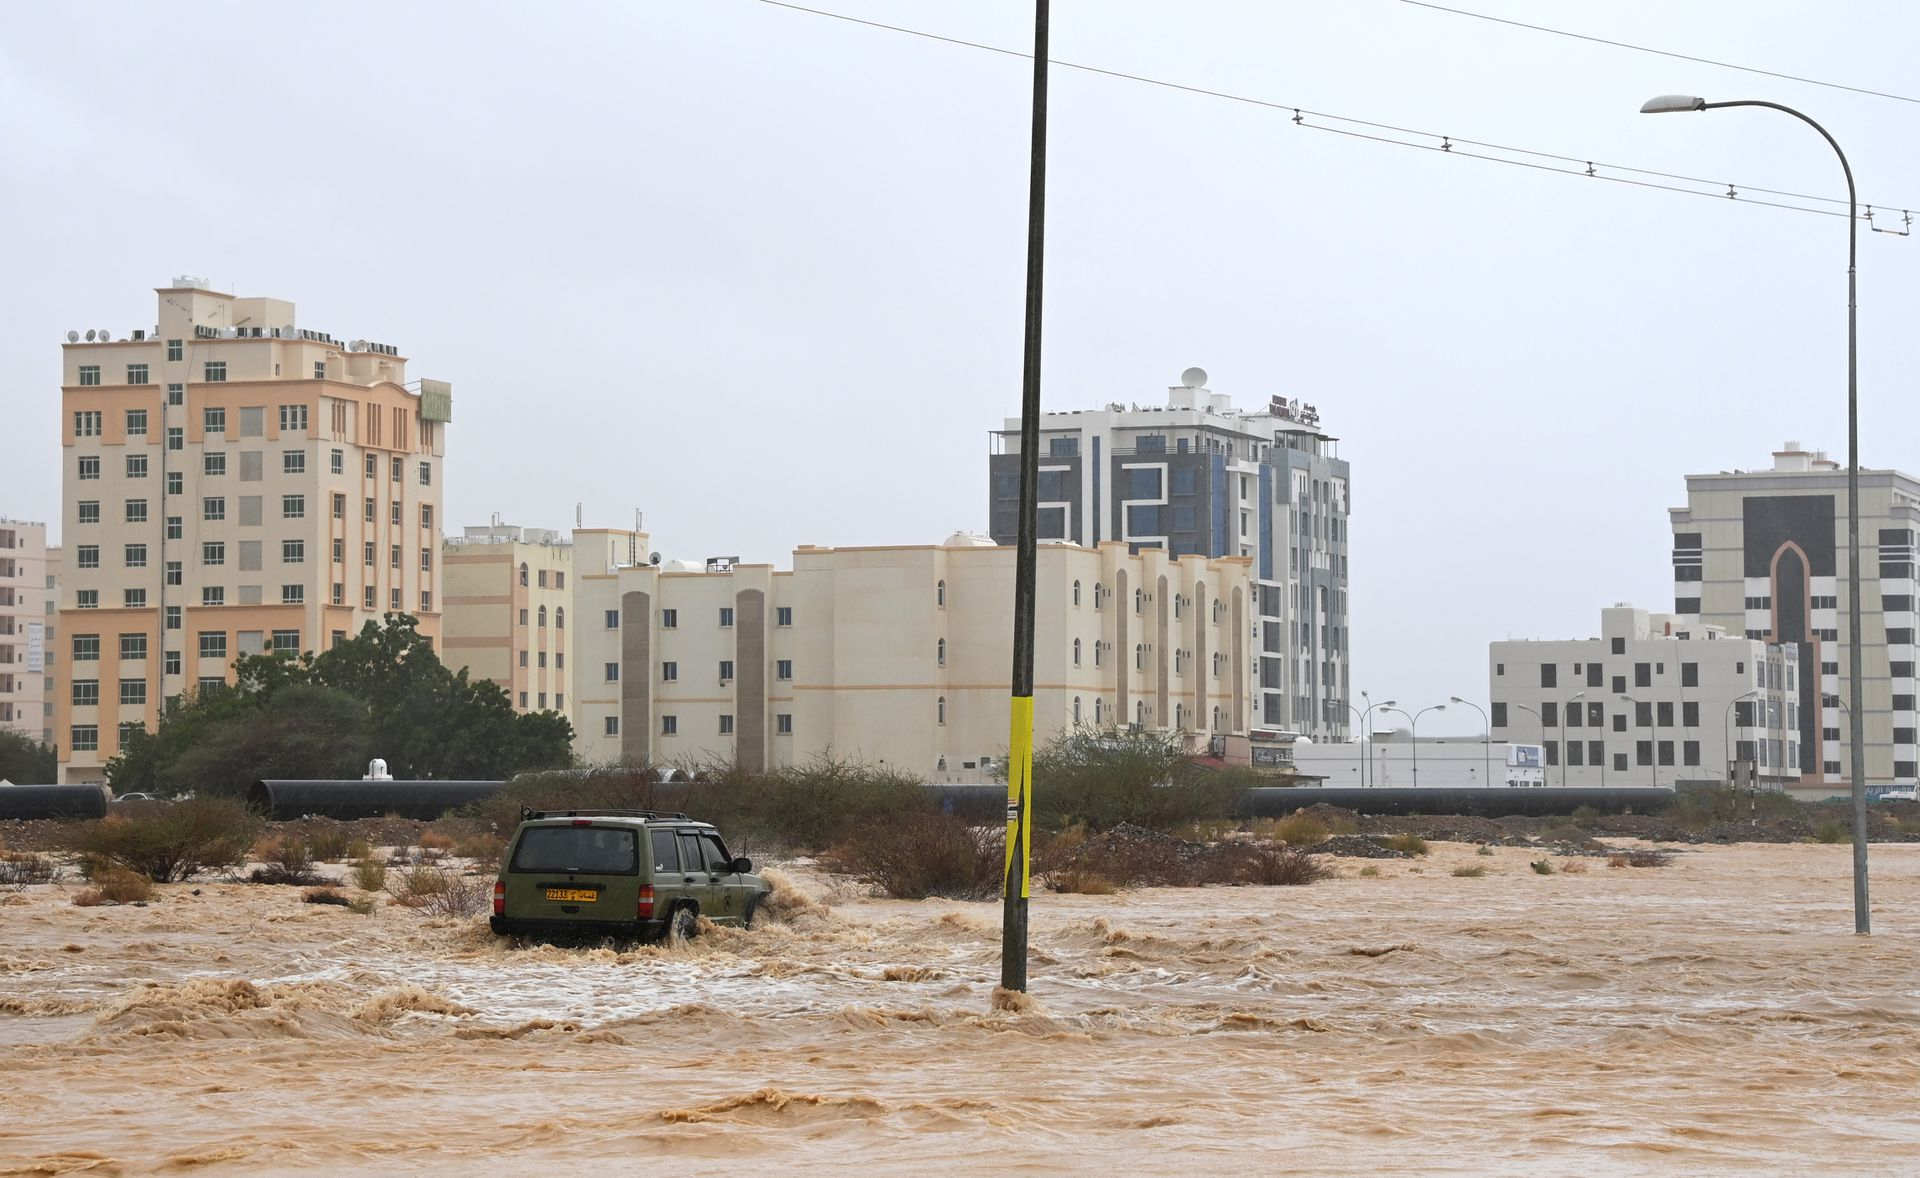 Flooded streets are seen as Cyclone Shaheen makes landfall in Muscat, Oman, 3rd October, 2021.